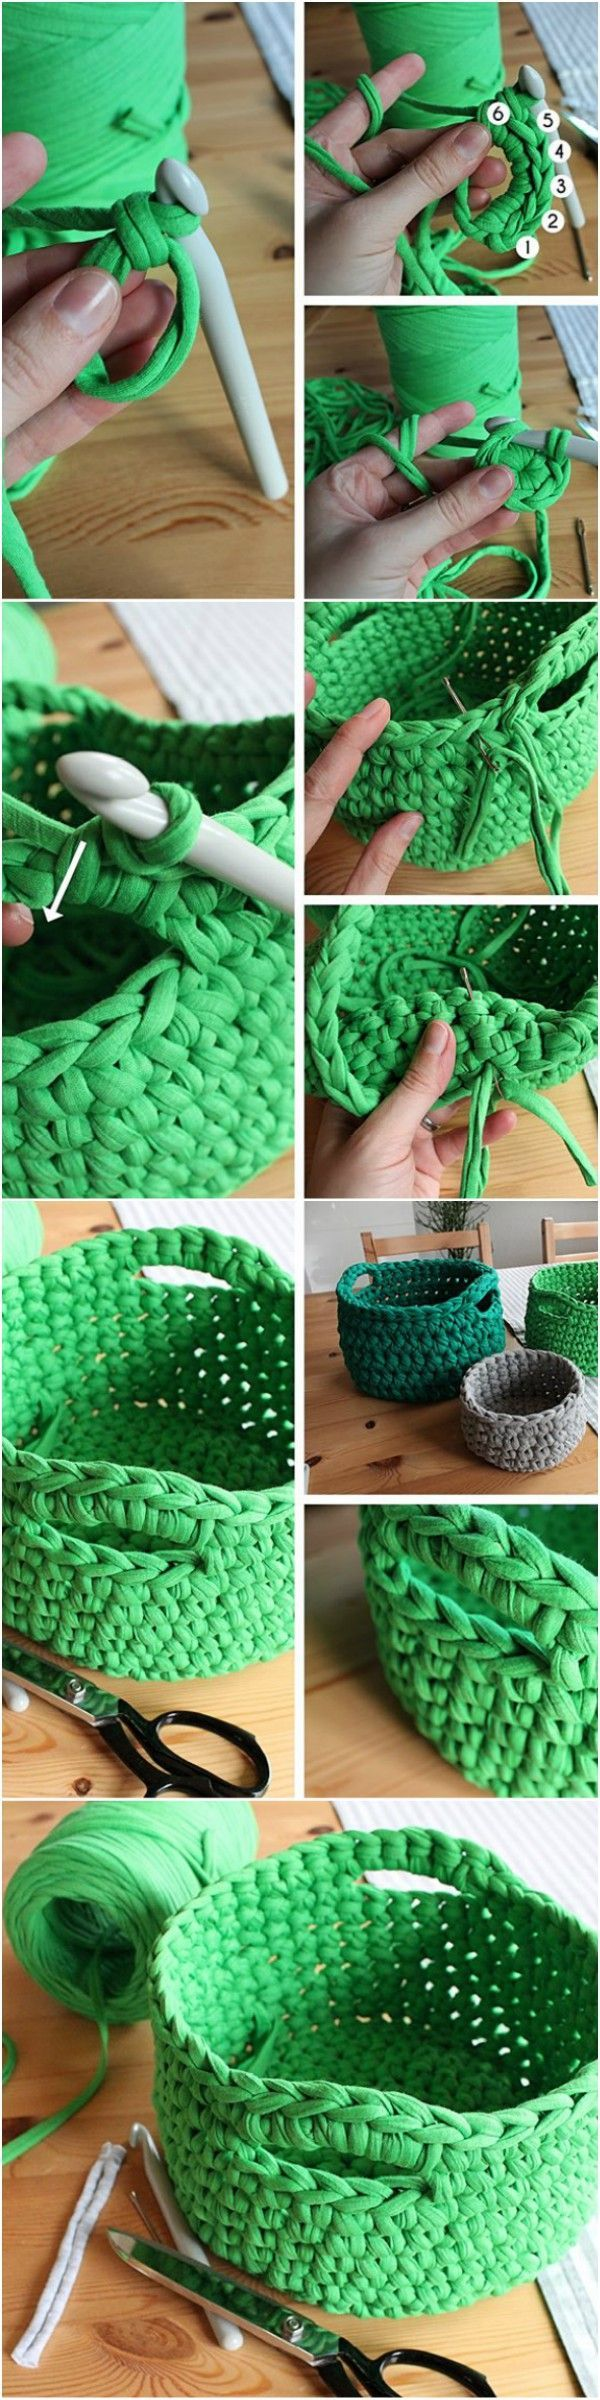 Up-cycle an old t-short into this stylish basket! #upcycle #diy #crochet #homemade